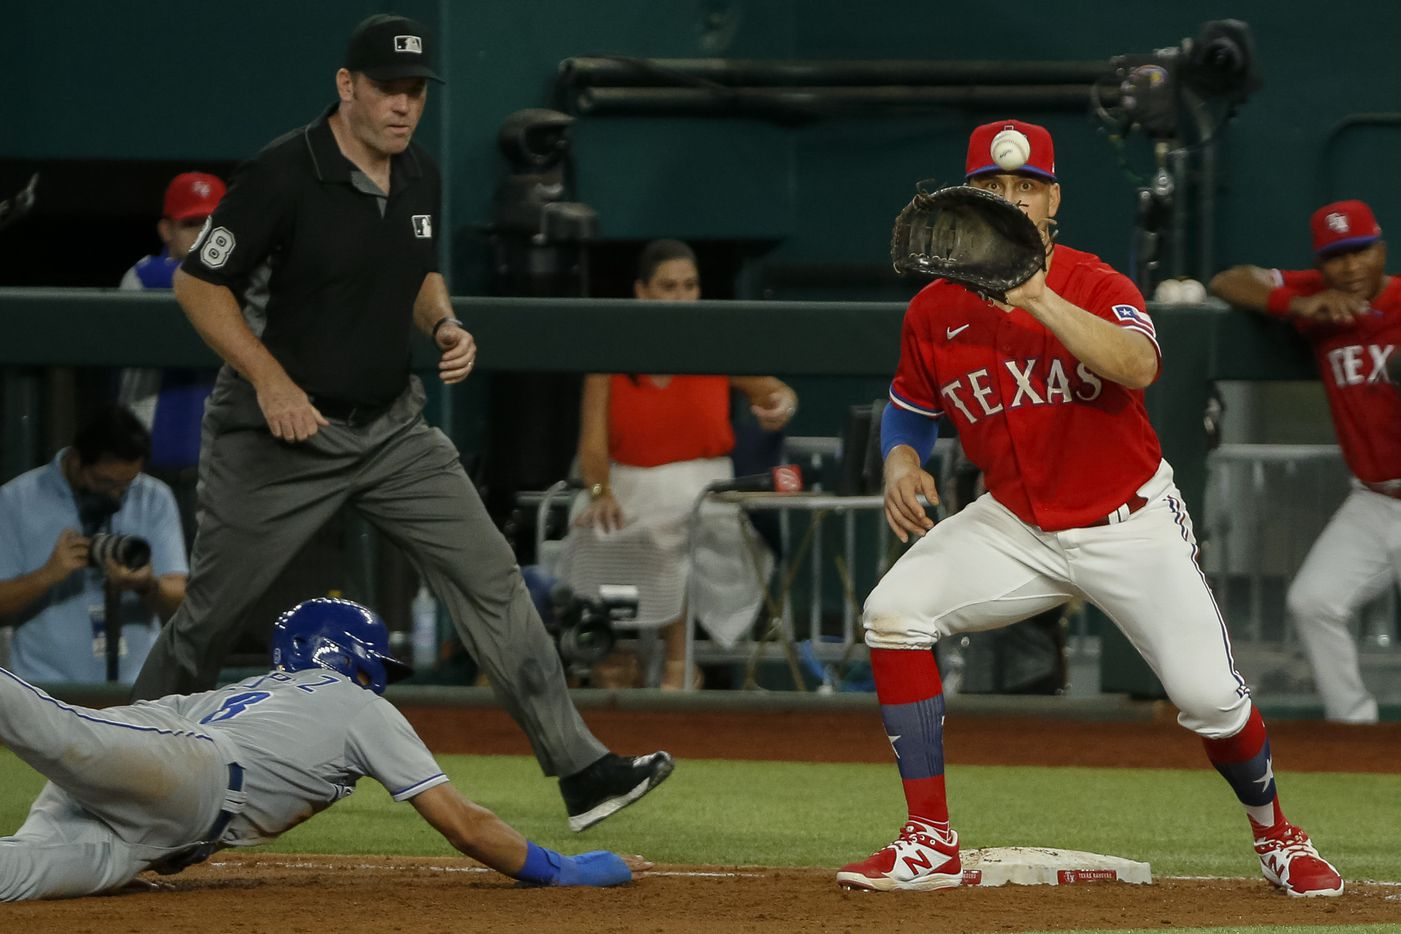 Texas Rangers first baseman Nate Lowe (30) eyes the ball ahead of Kansas City Royals shortstop Nicky Lopez (8) during the third inning at Globe Life Field on Friday, June 25, 2021, in Arlington. (Elias Valverde II/The Dallas Morning News)